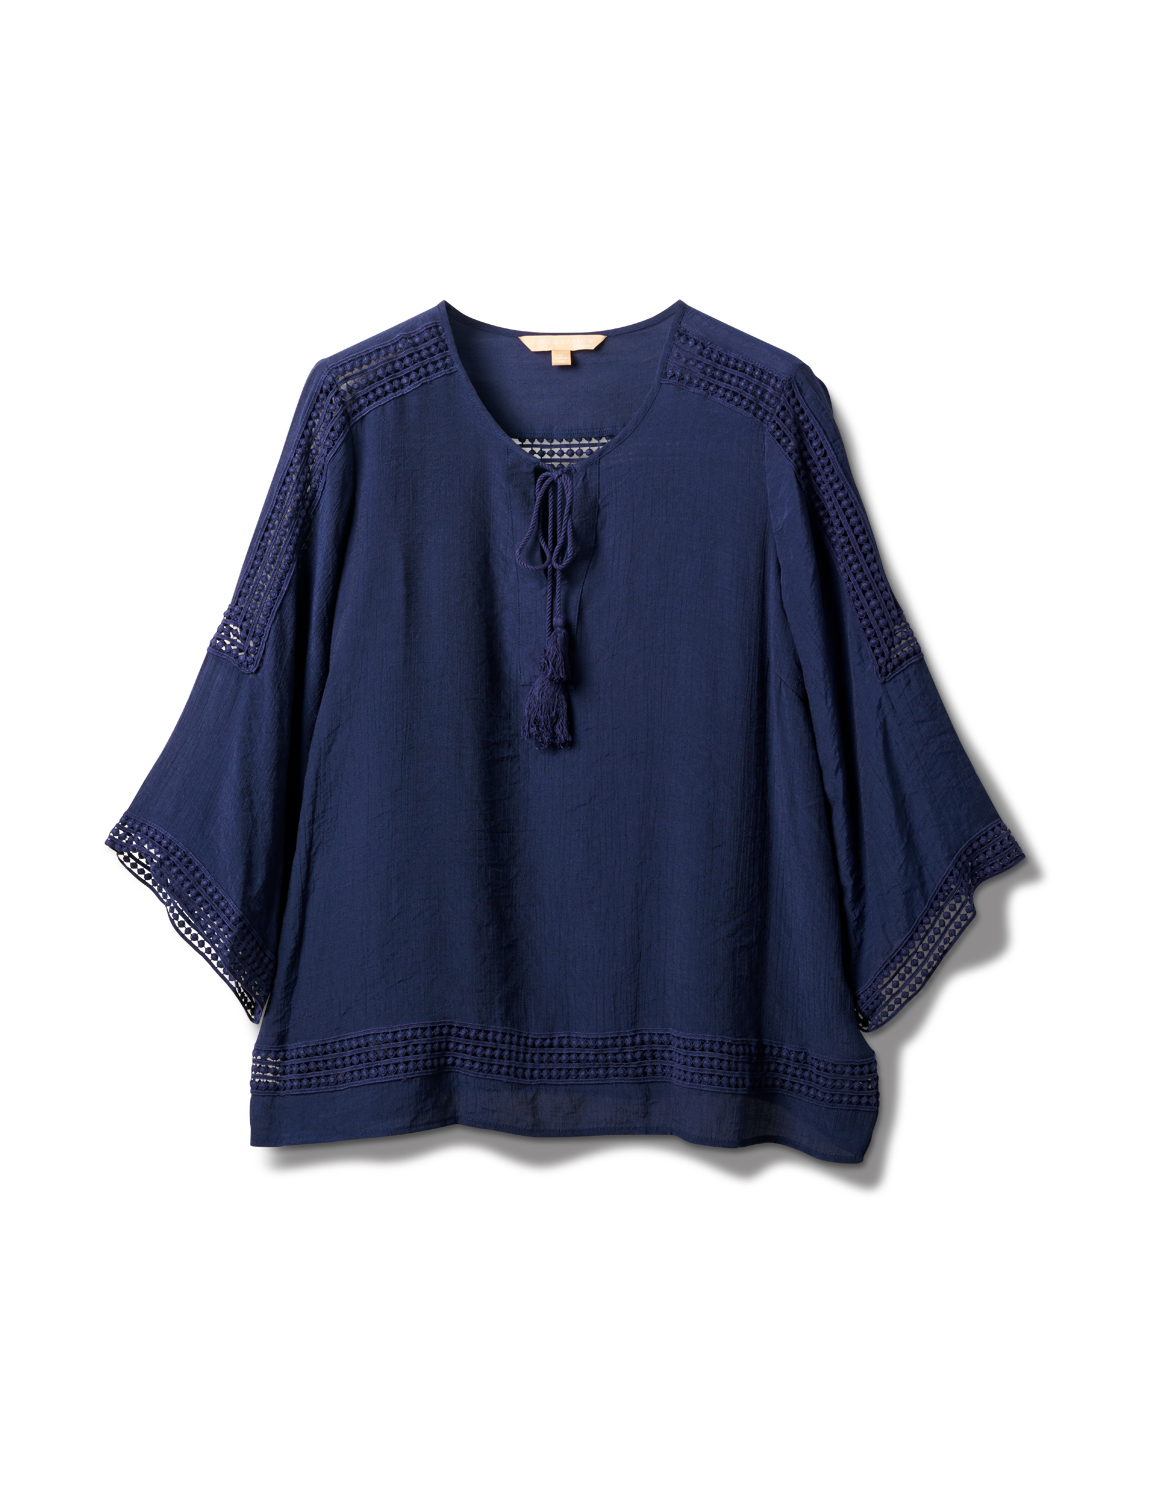 Crochet Trim Tassel Textured Blouse -Navy Blazer - Front